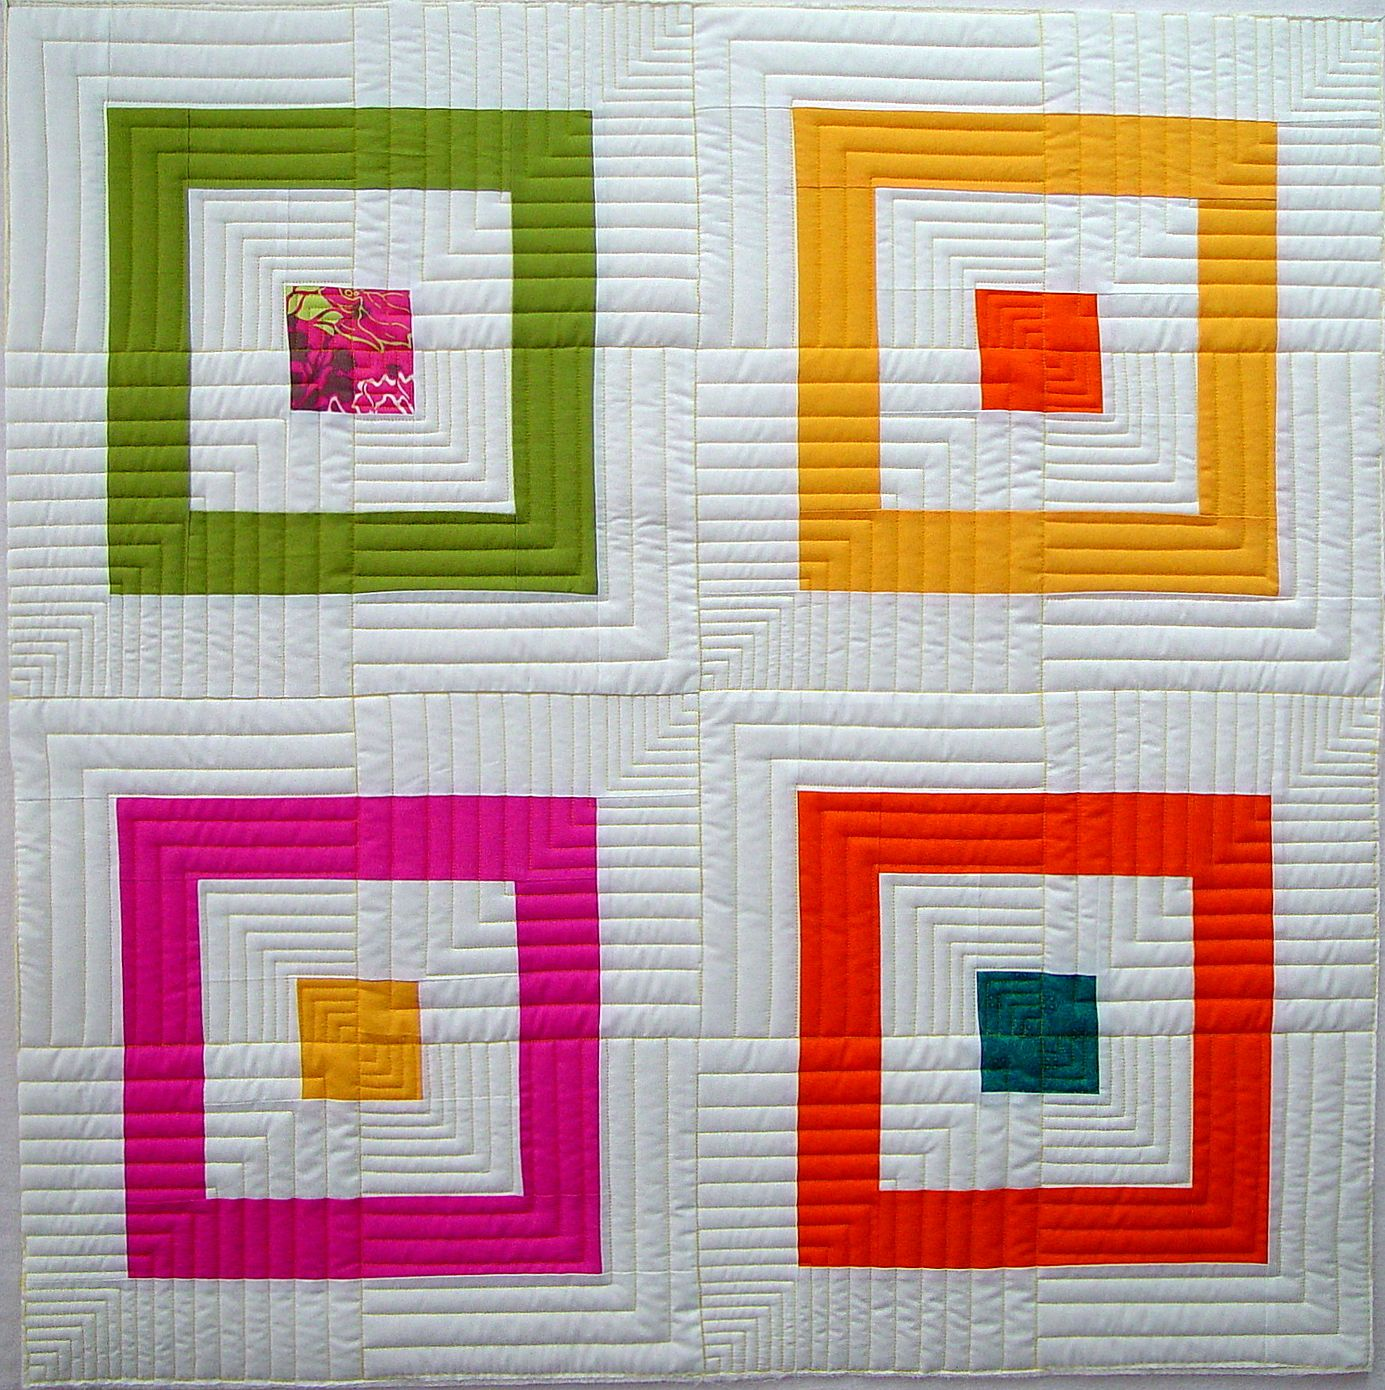 Pin by Kate Ross on Quilting patterns | Pinterest | Bordado, Colchas ...